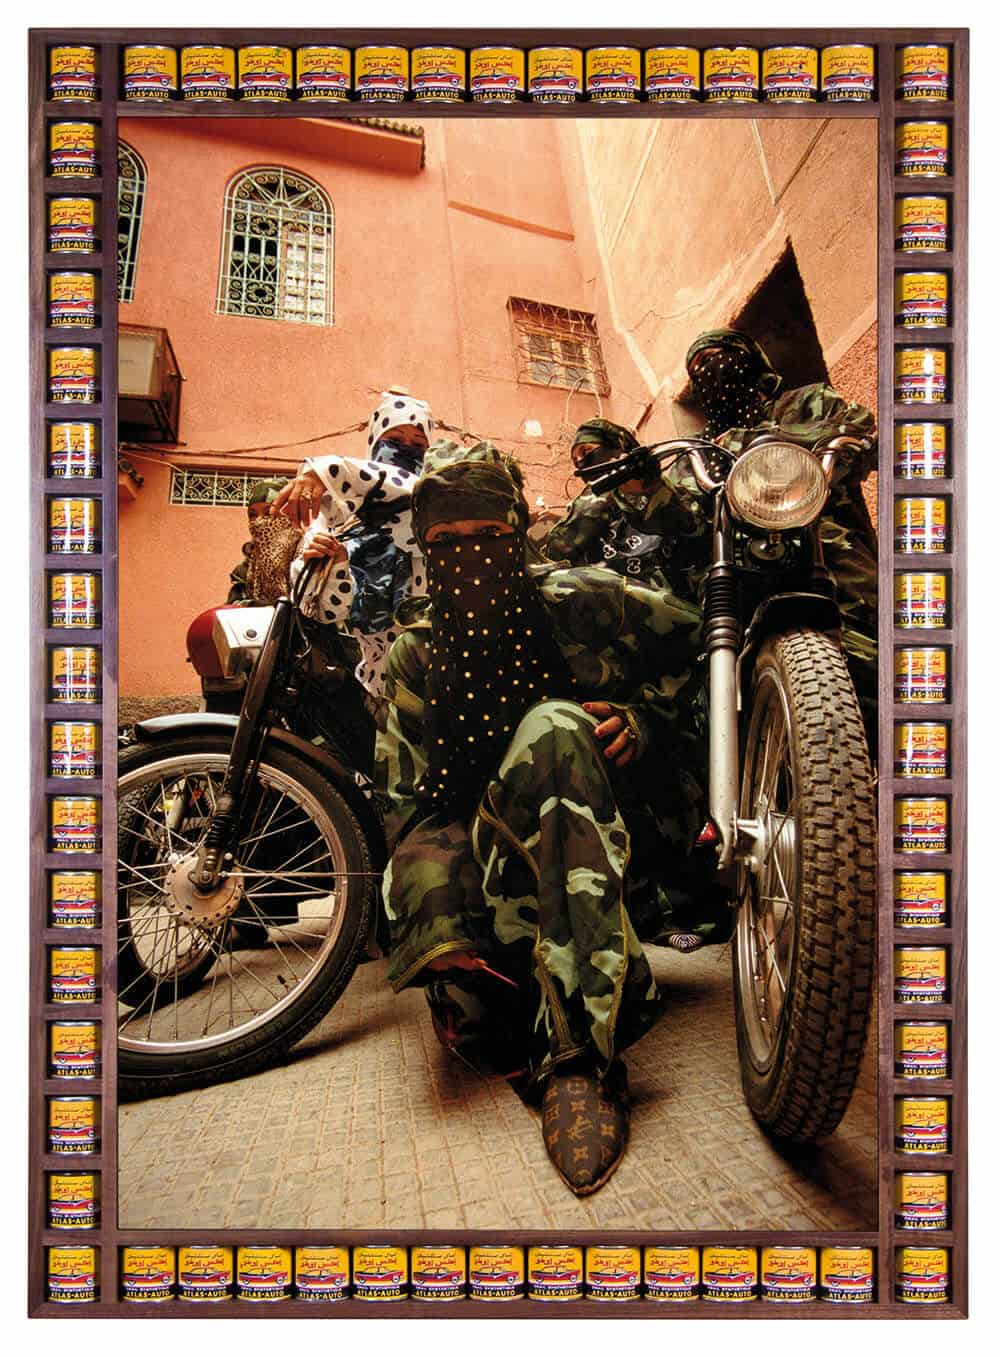 Hassan Hajjaj, Gang Of Marrakesh. © Hassan Hajjaj. Courtesy of the artist and Vigo Gallery.